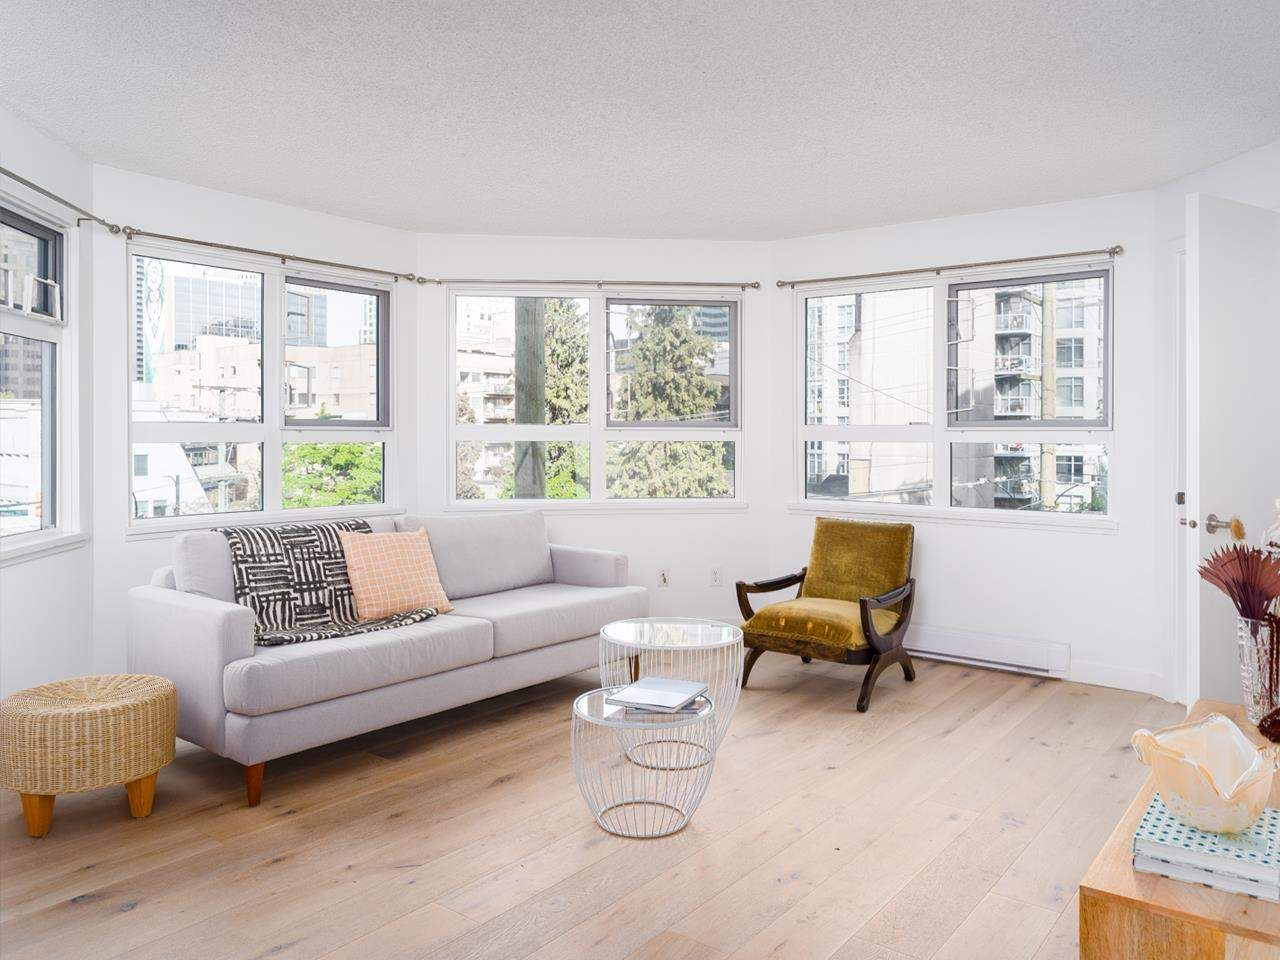 """Main Photo: 305 921 THURLOW Street in Vancouver: West End VW Condo for sale in """"Kristoff Place"""" (Vancouver West)  : MLS®# R2580196"""